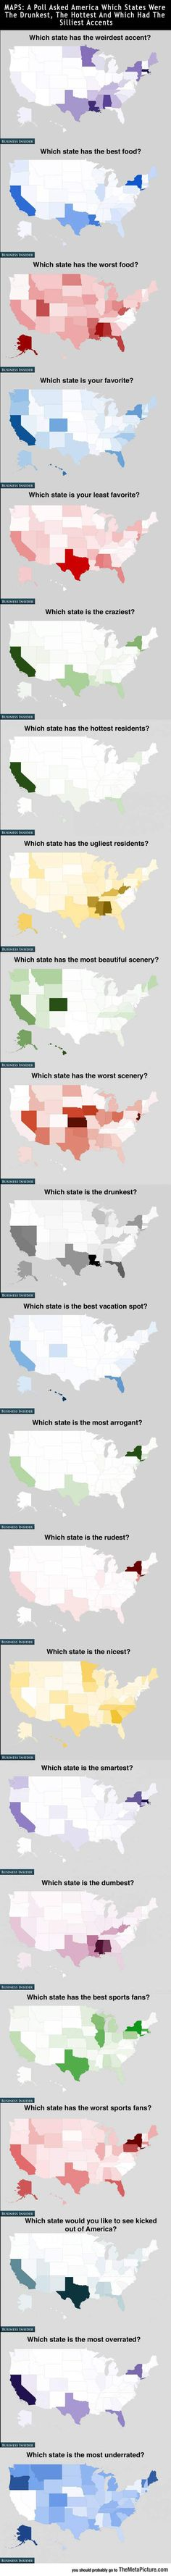 How Americans Feel About Every State - The Meta Picture